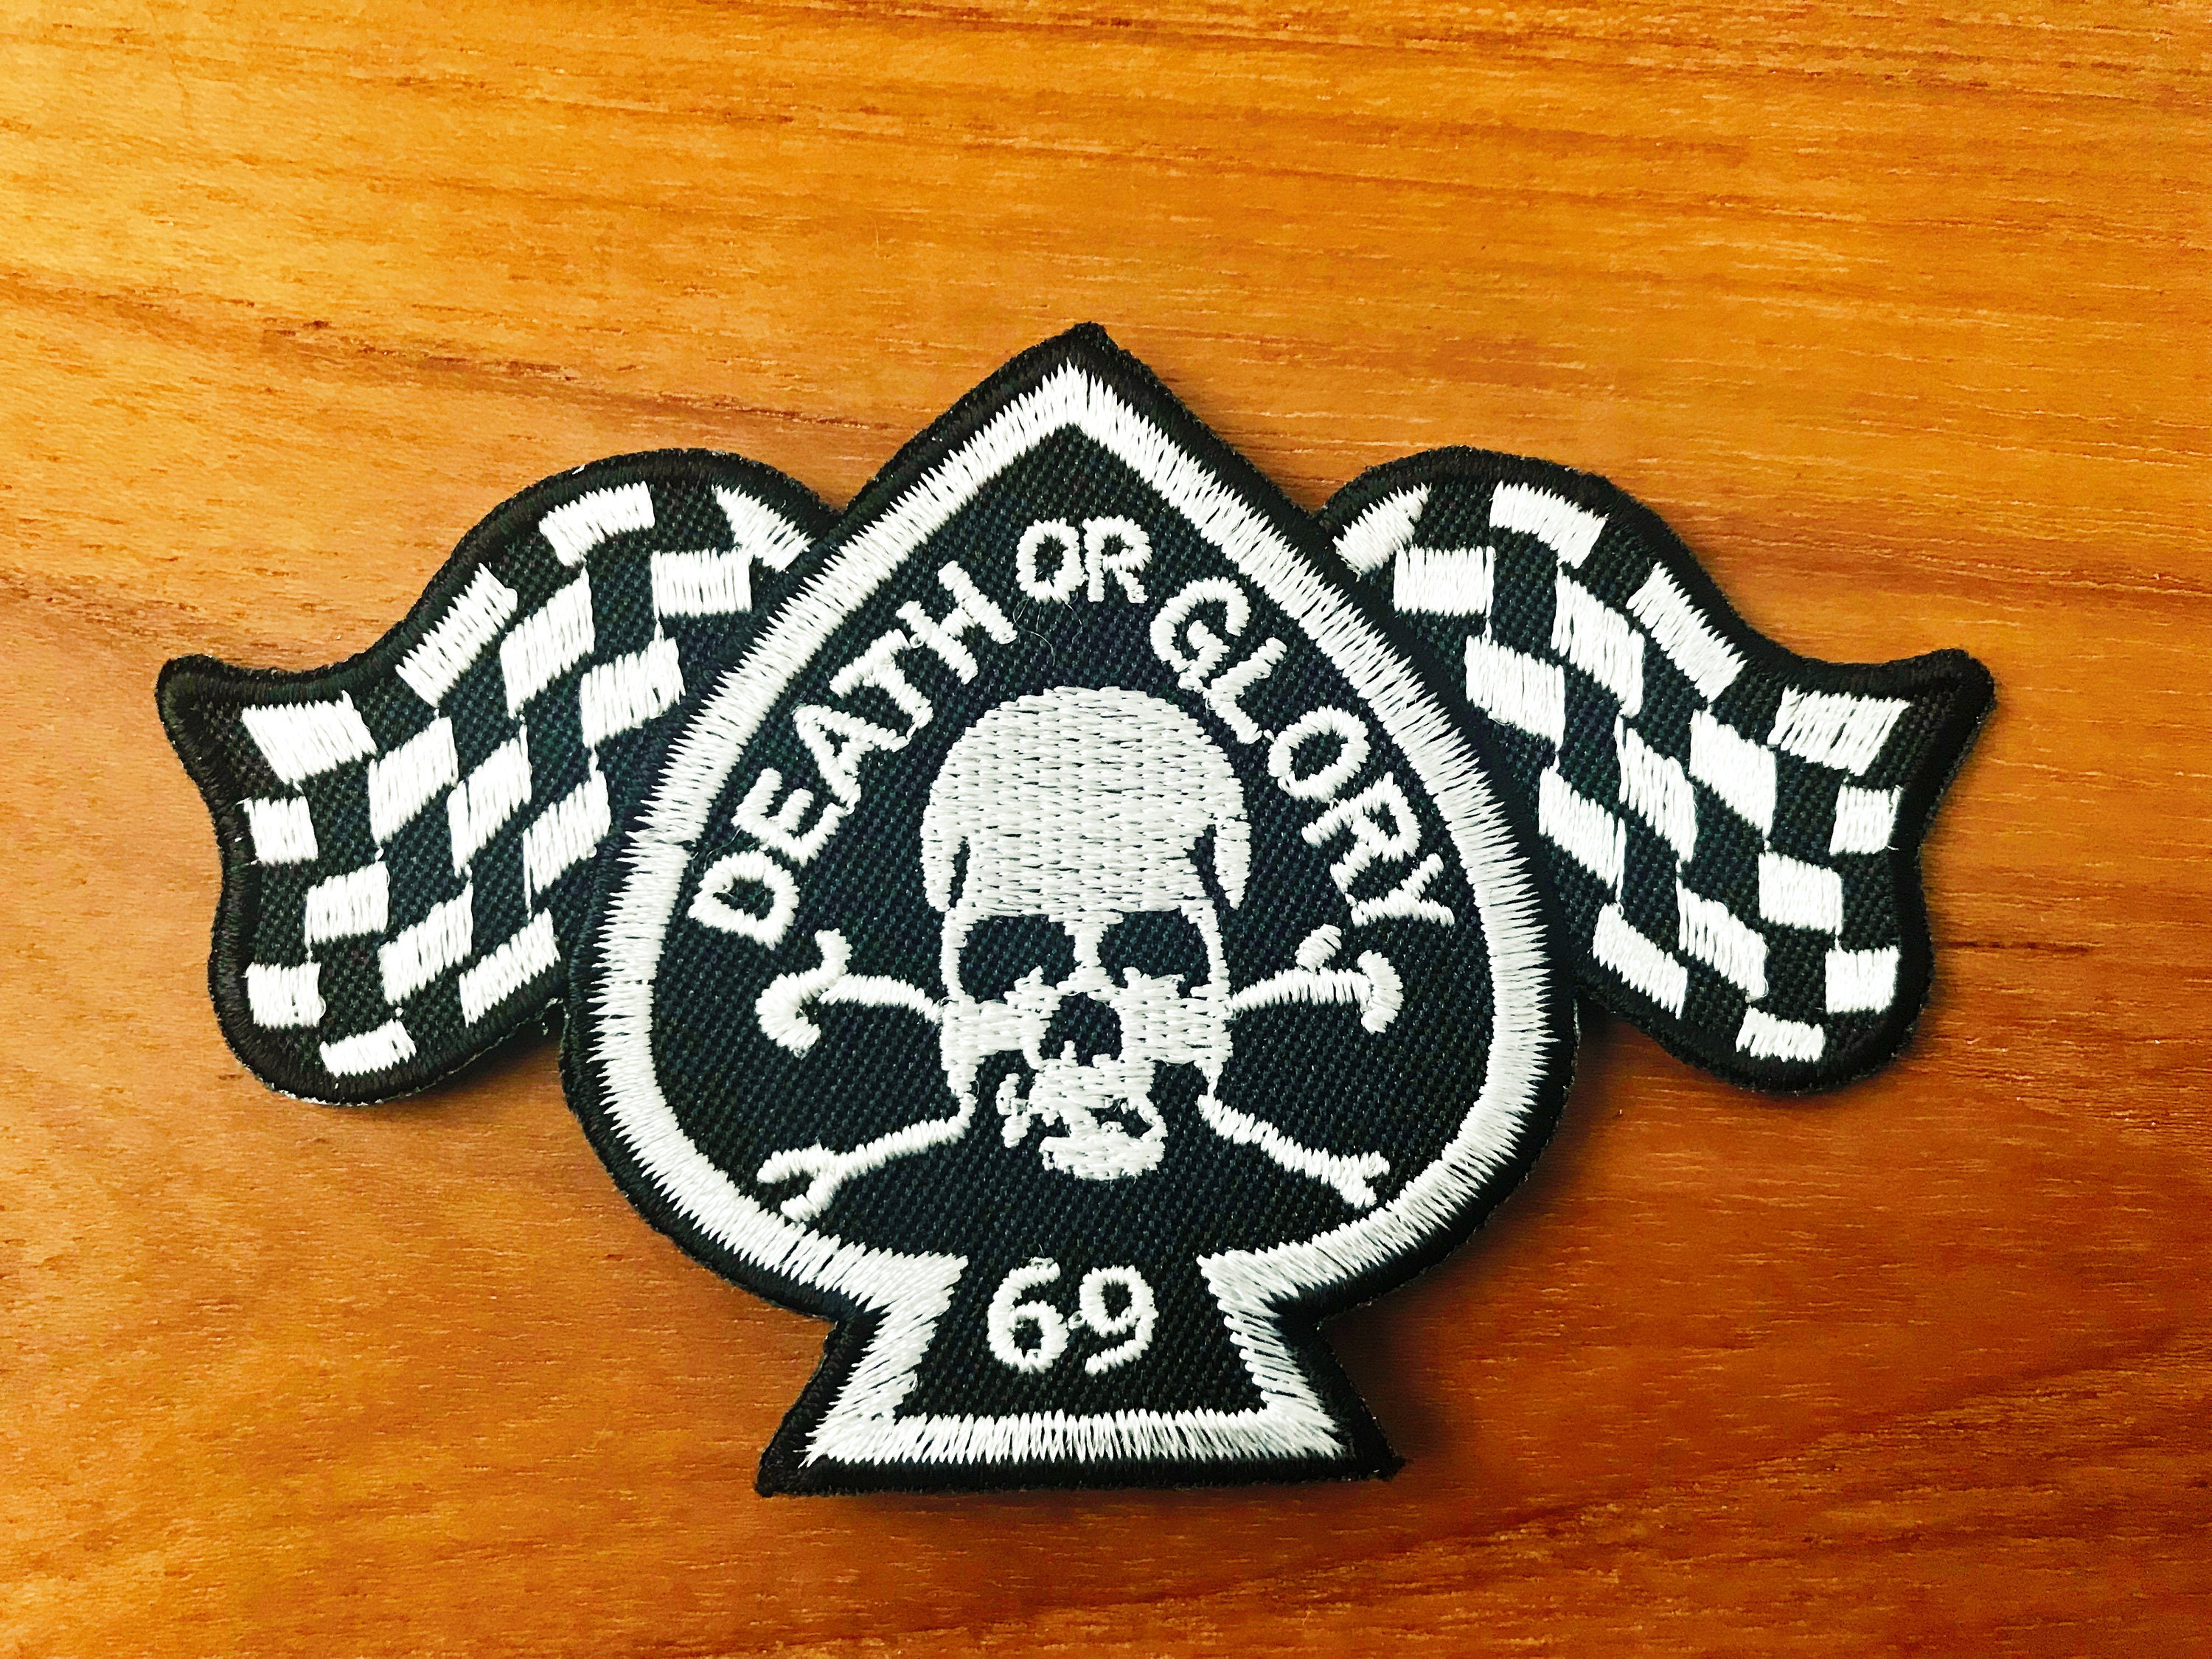 Set 2 pcs Iron On Patch Embroidered 69 Sign Checkered Flag Background New Sew